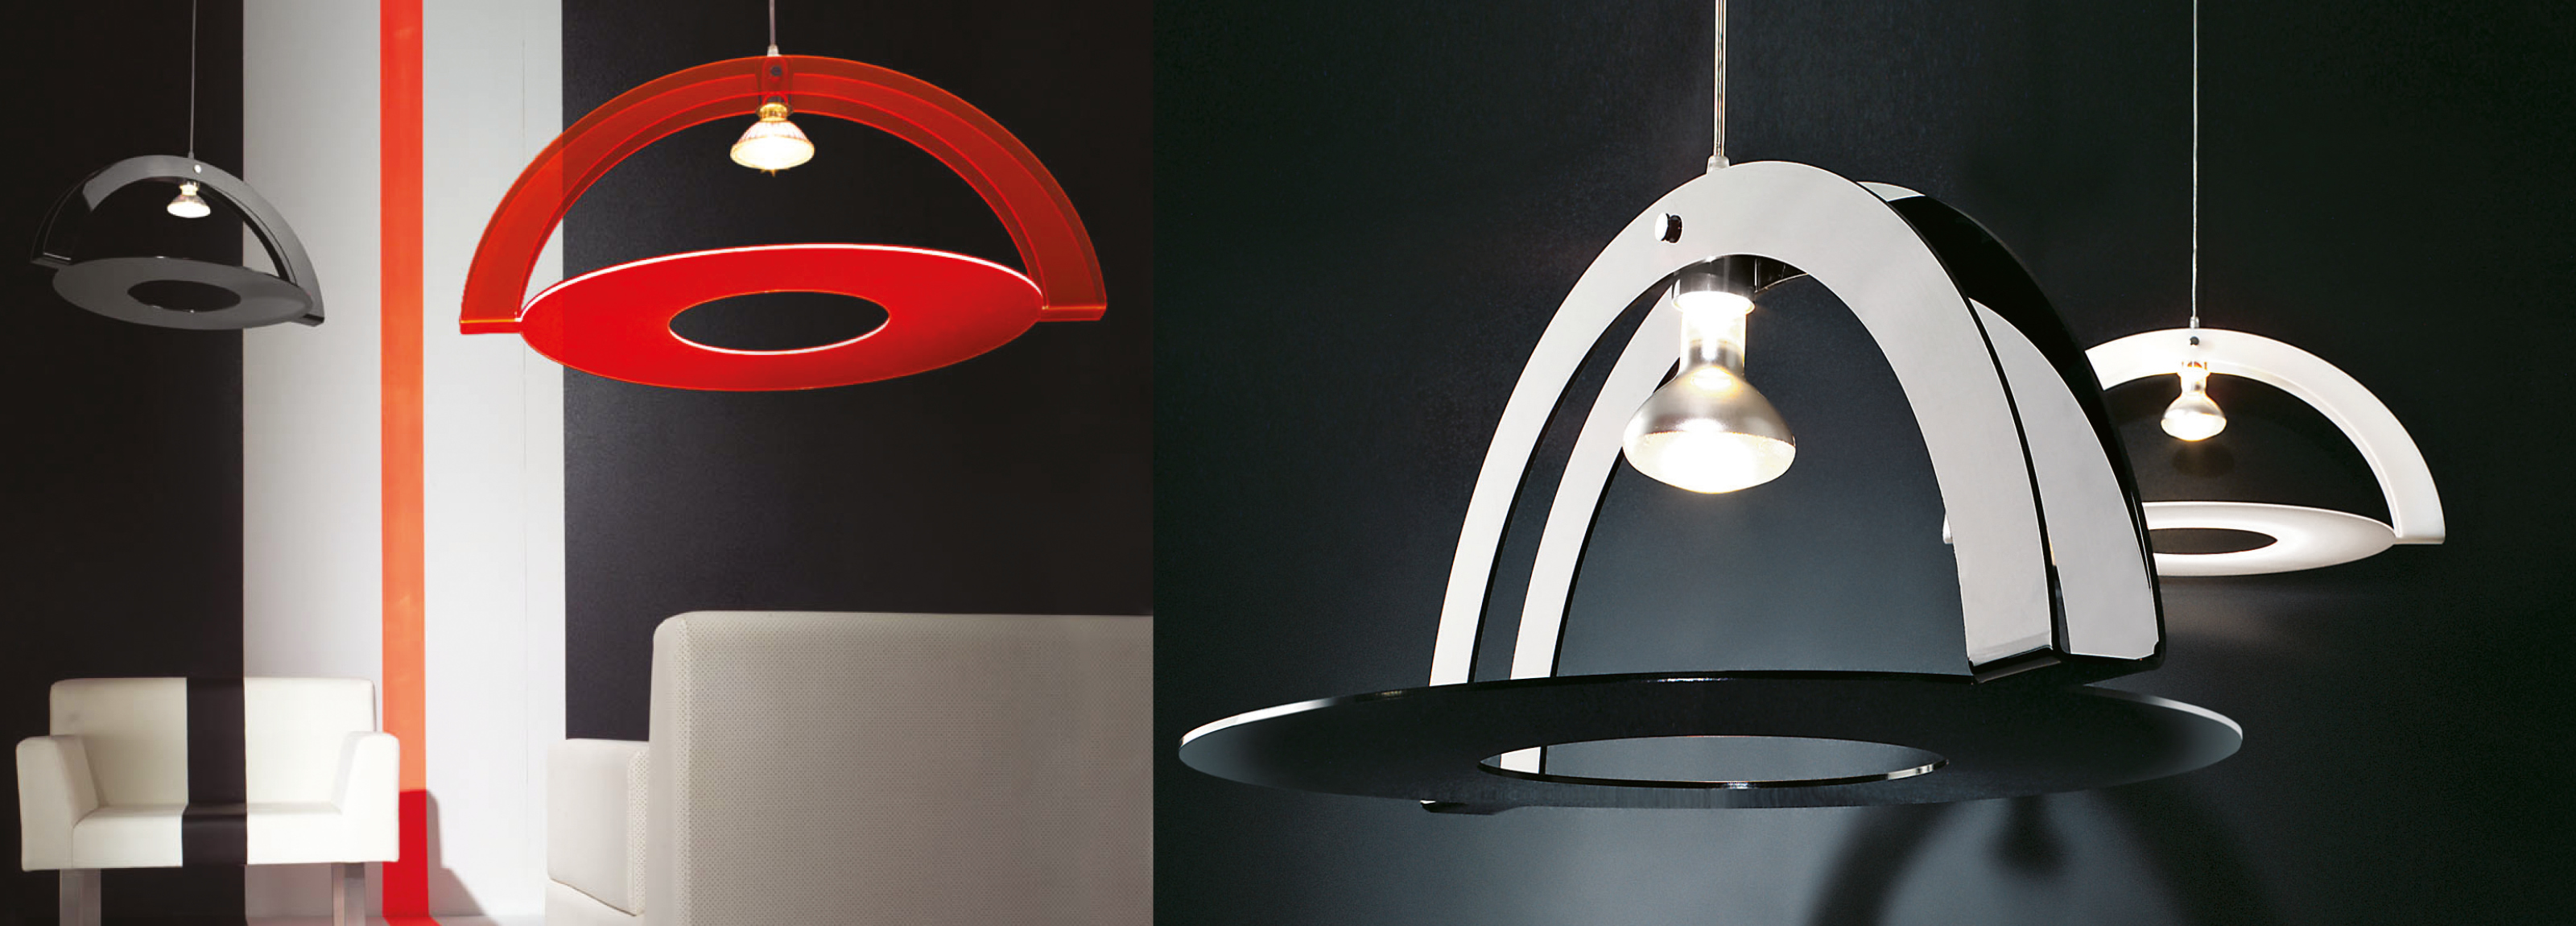 Product design signed by Hangar Design Group for the Italian lighting company.